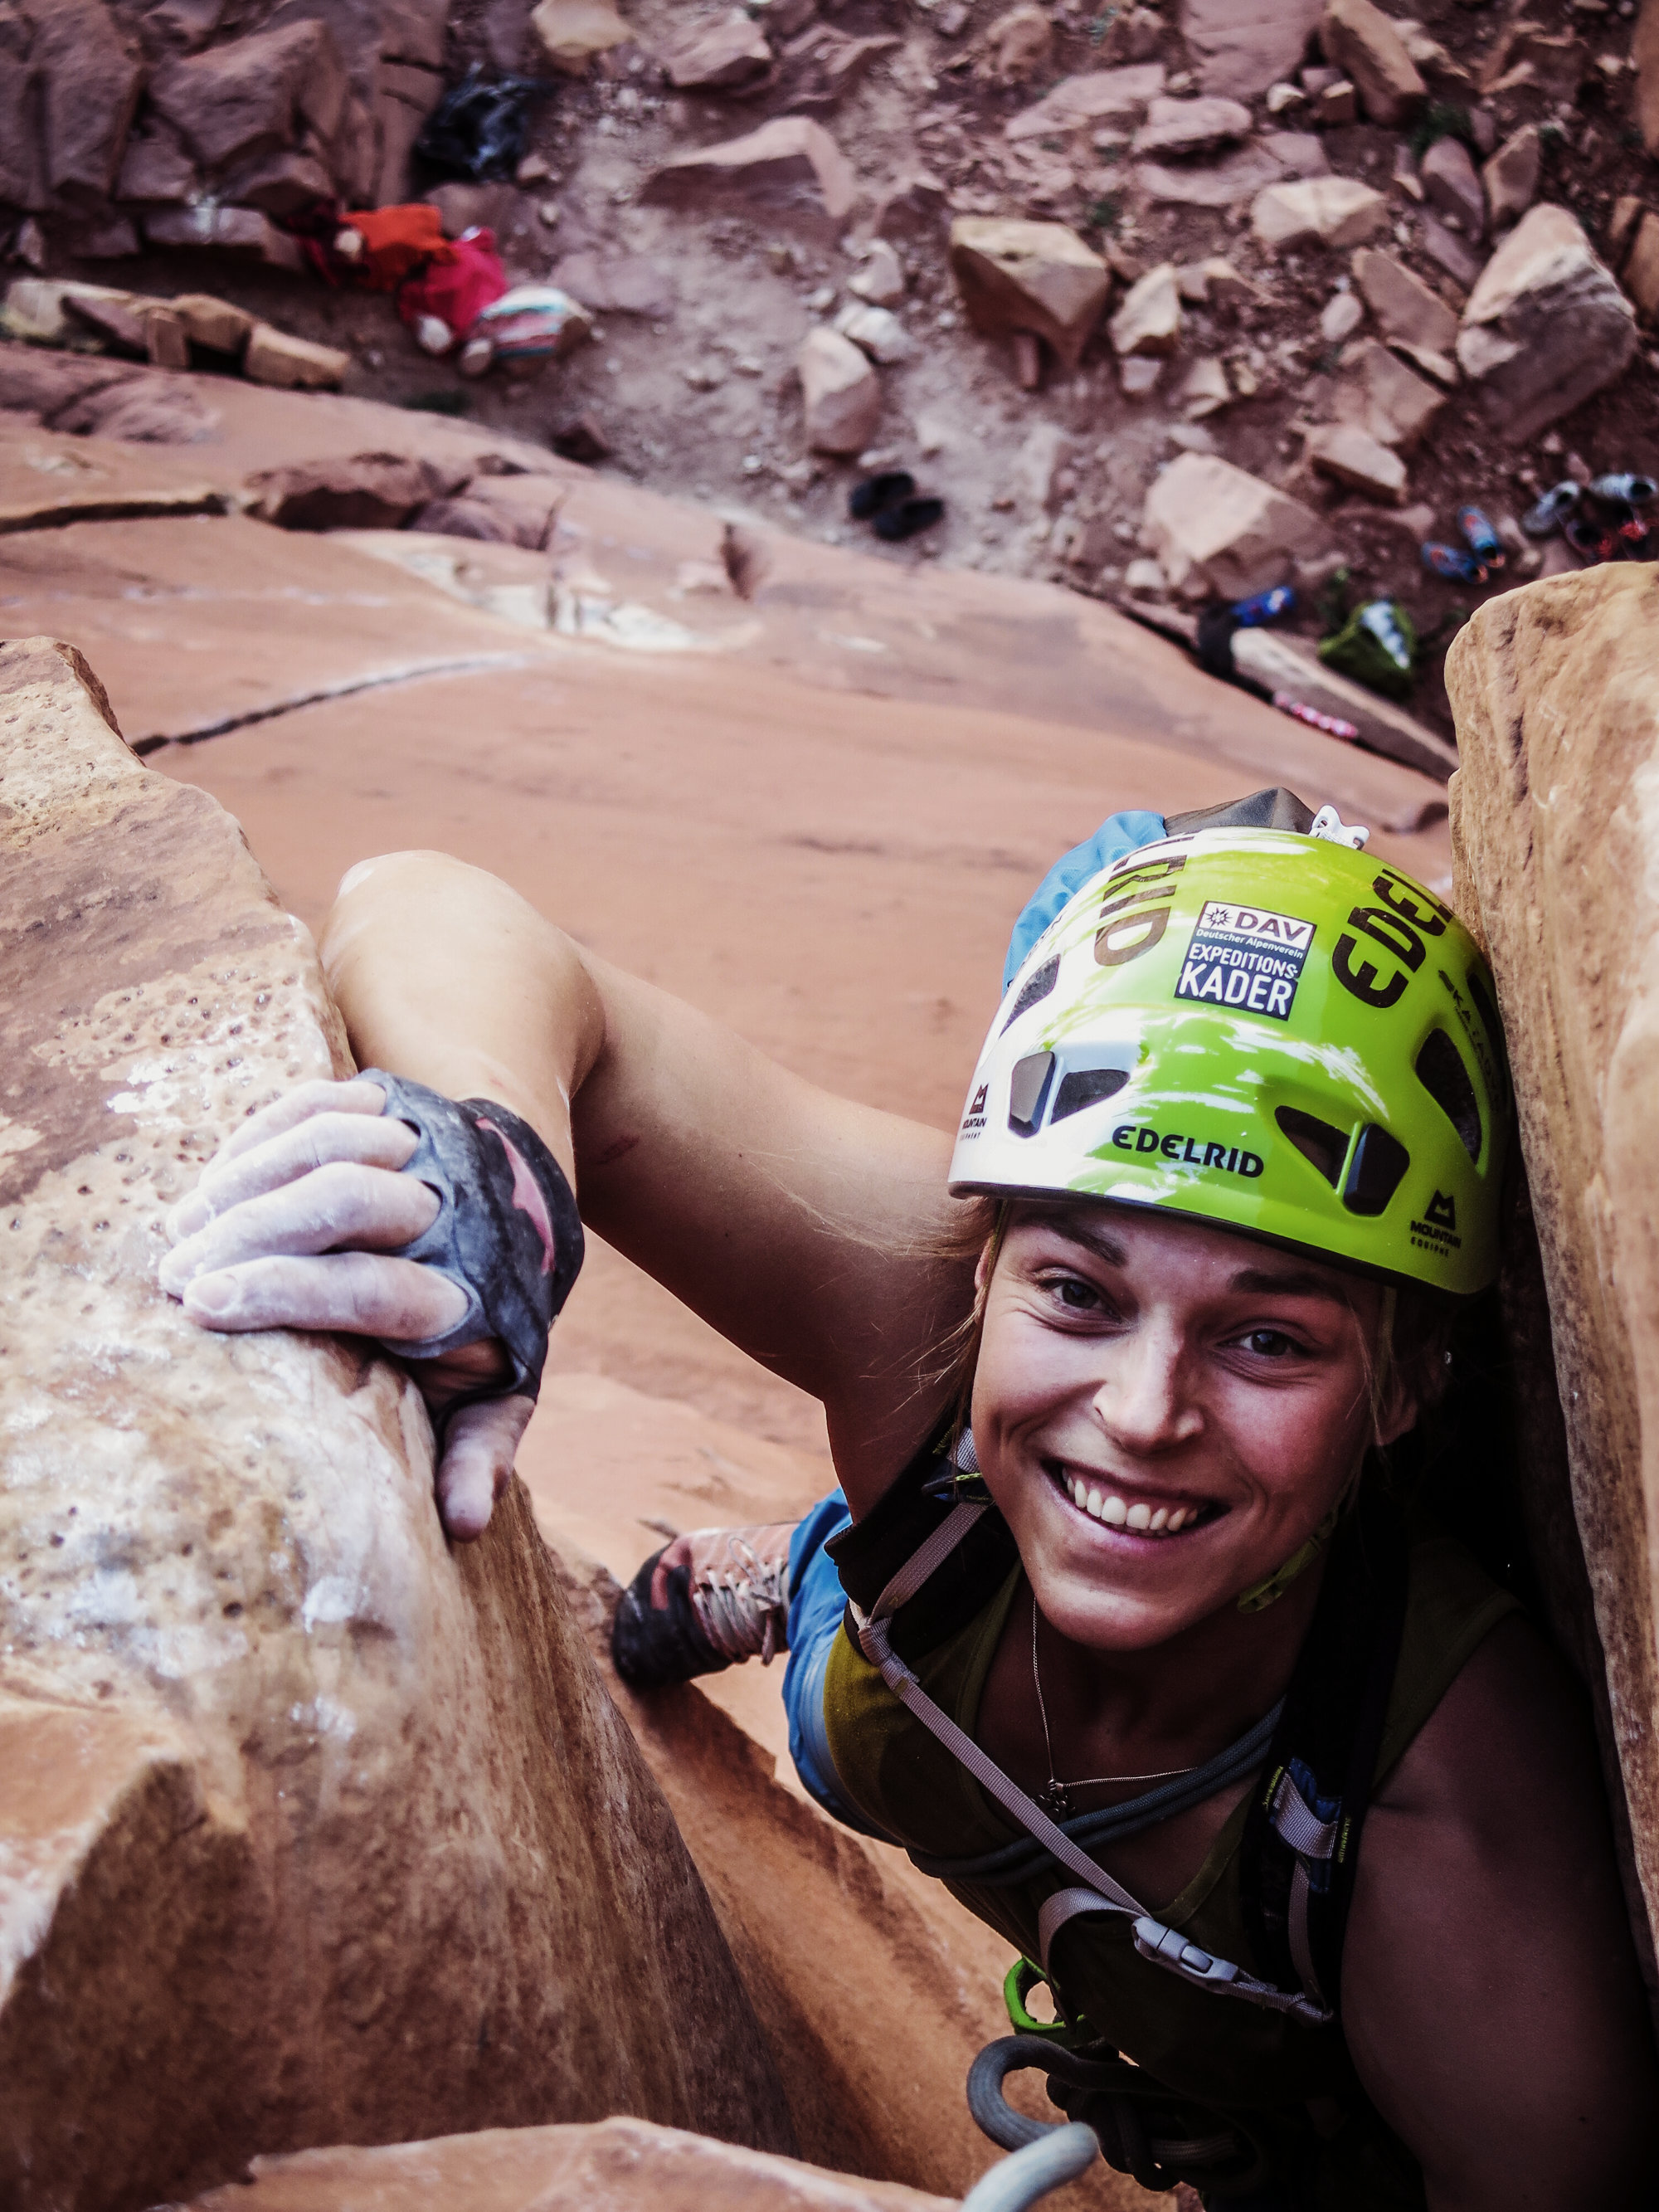 Veronika Hofmann beim Klettern im Indian Creek Klettergebiet in den USA